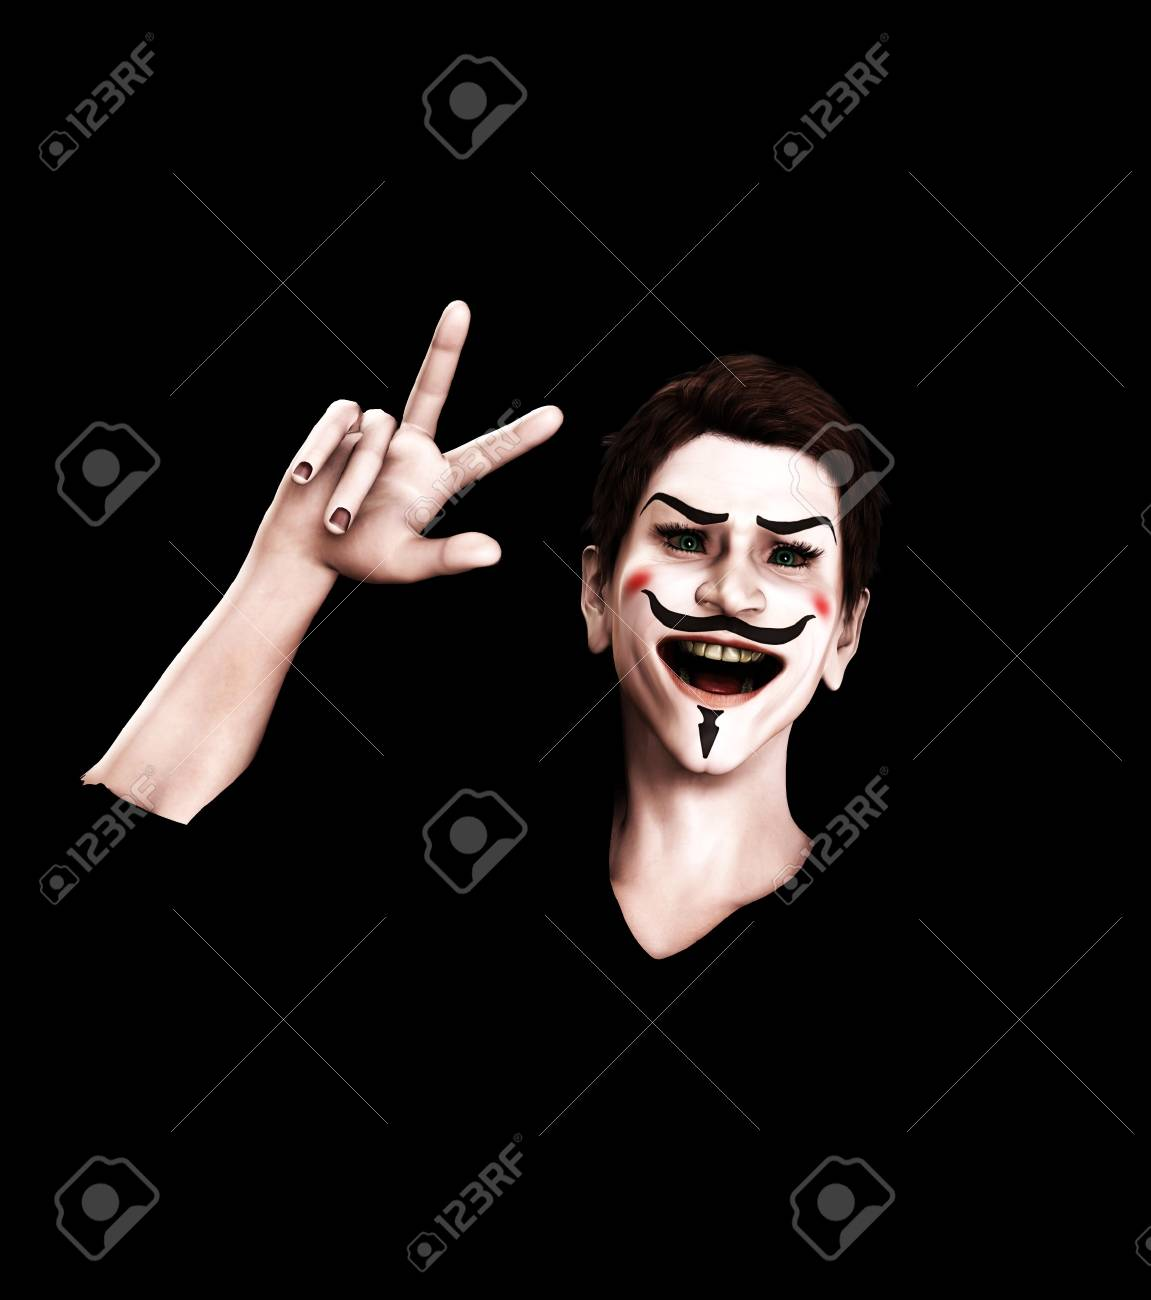 A representation of Guy Fawkes looking victorious. Stock Photo - 11399654